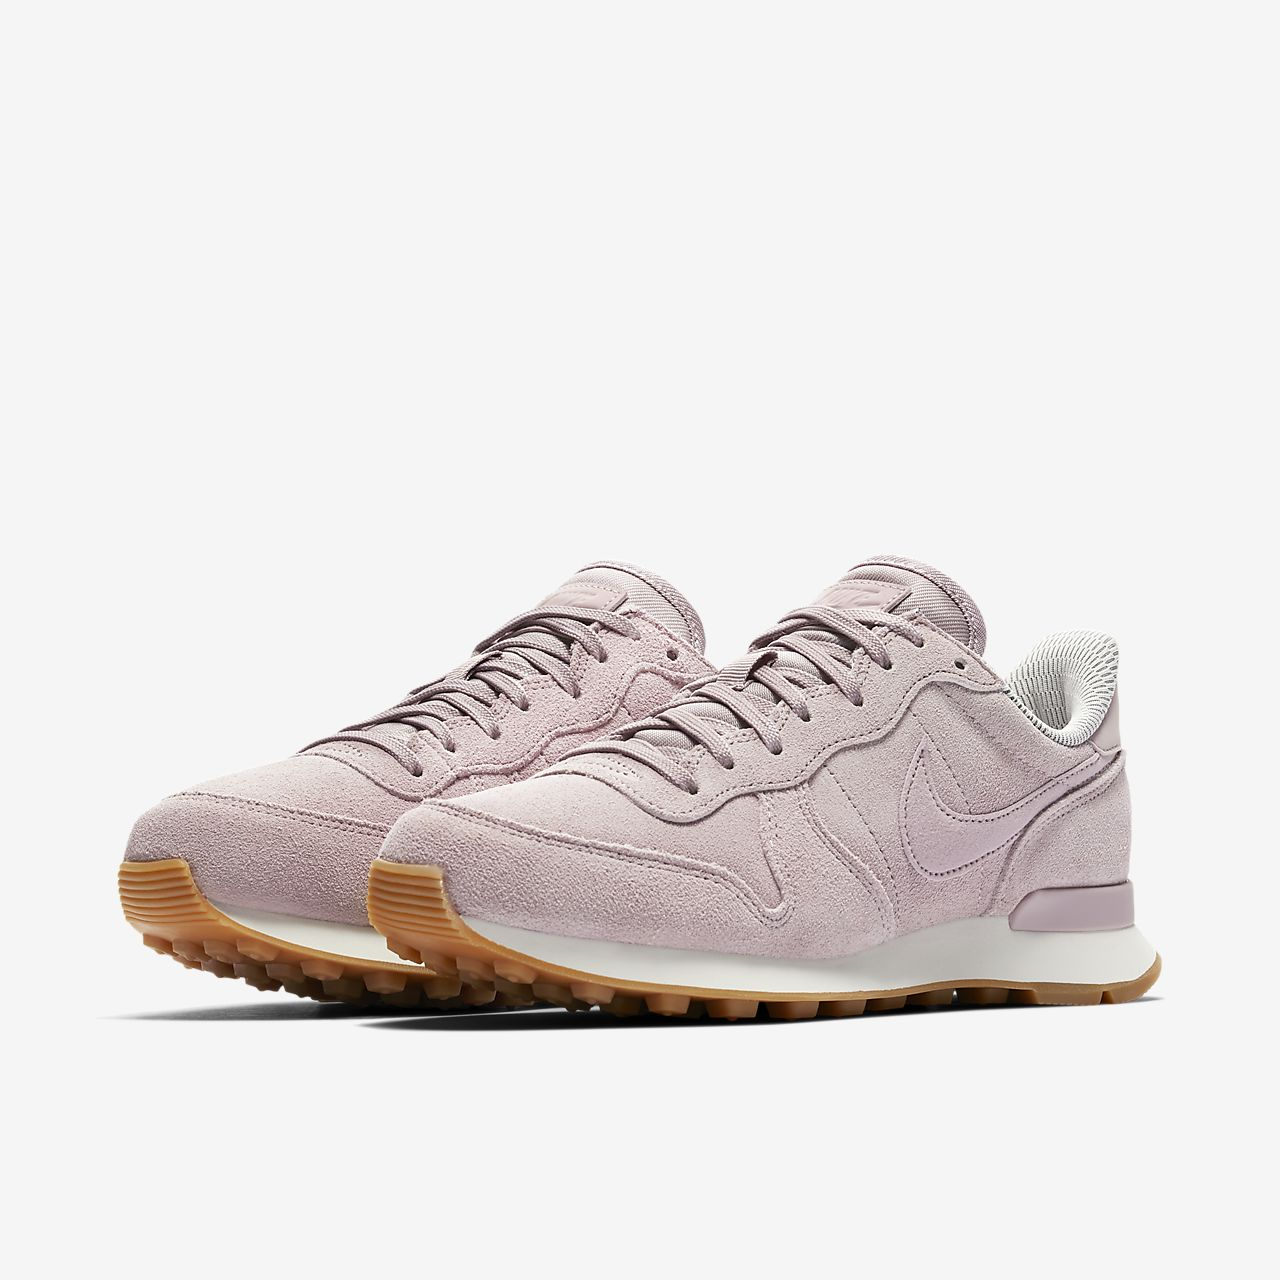 Low Resolution Nike Internationalist SE Women's Shoe Nike Internationalist  SE Women's Shoe